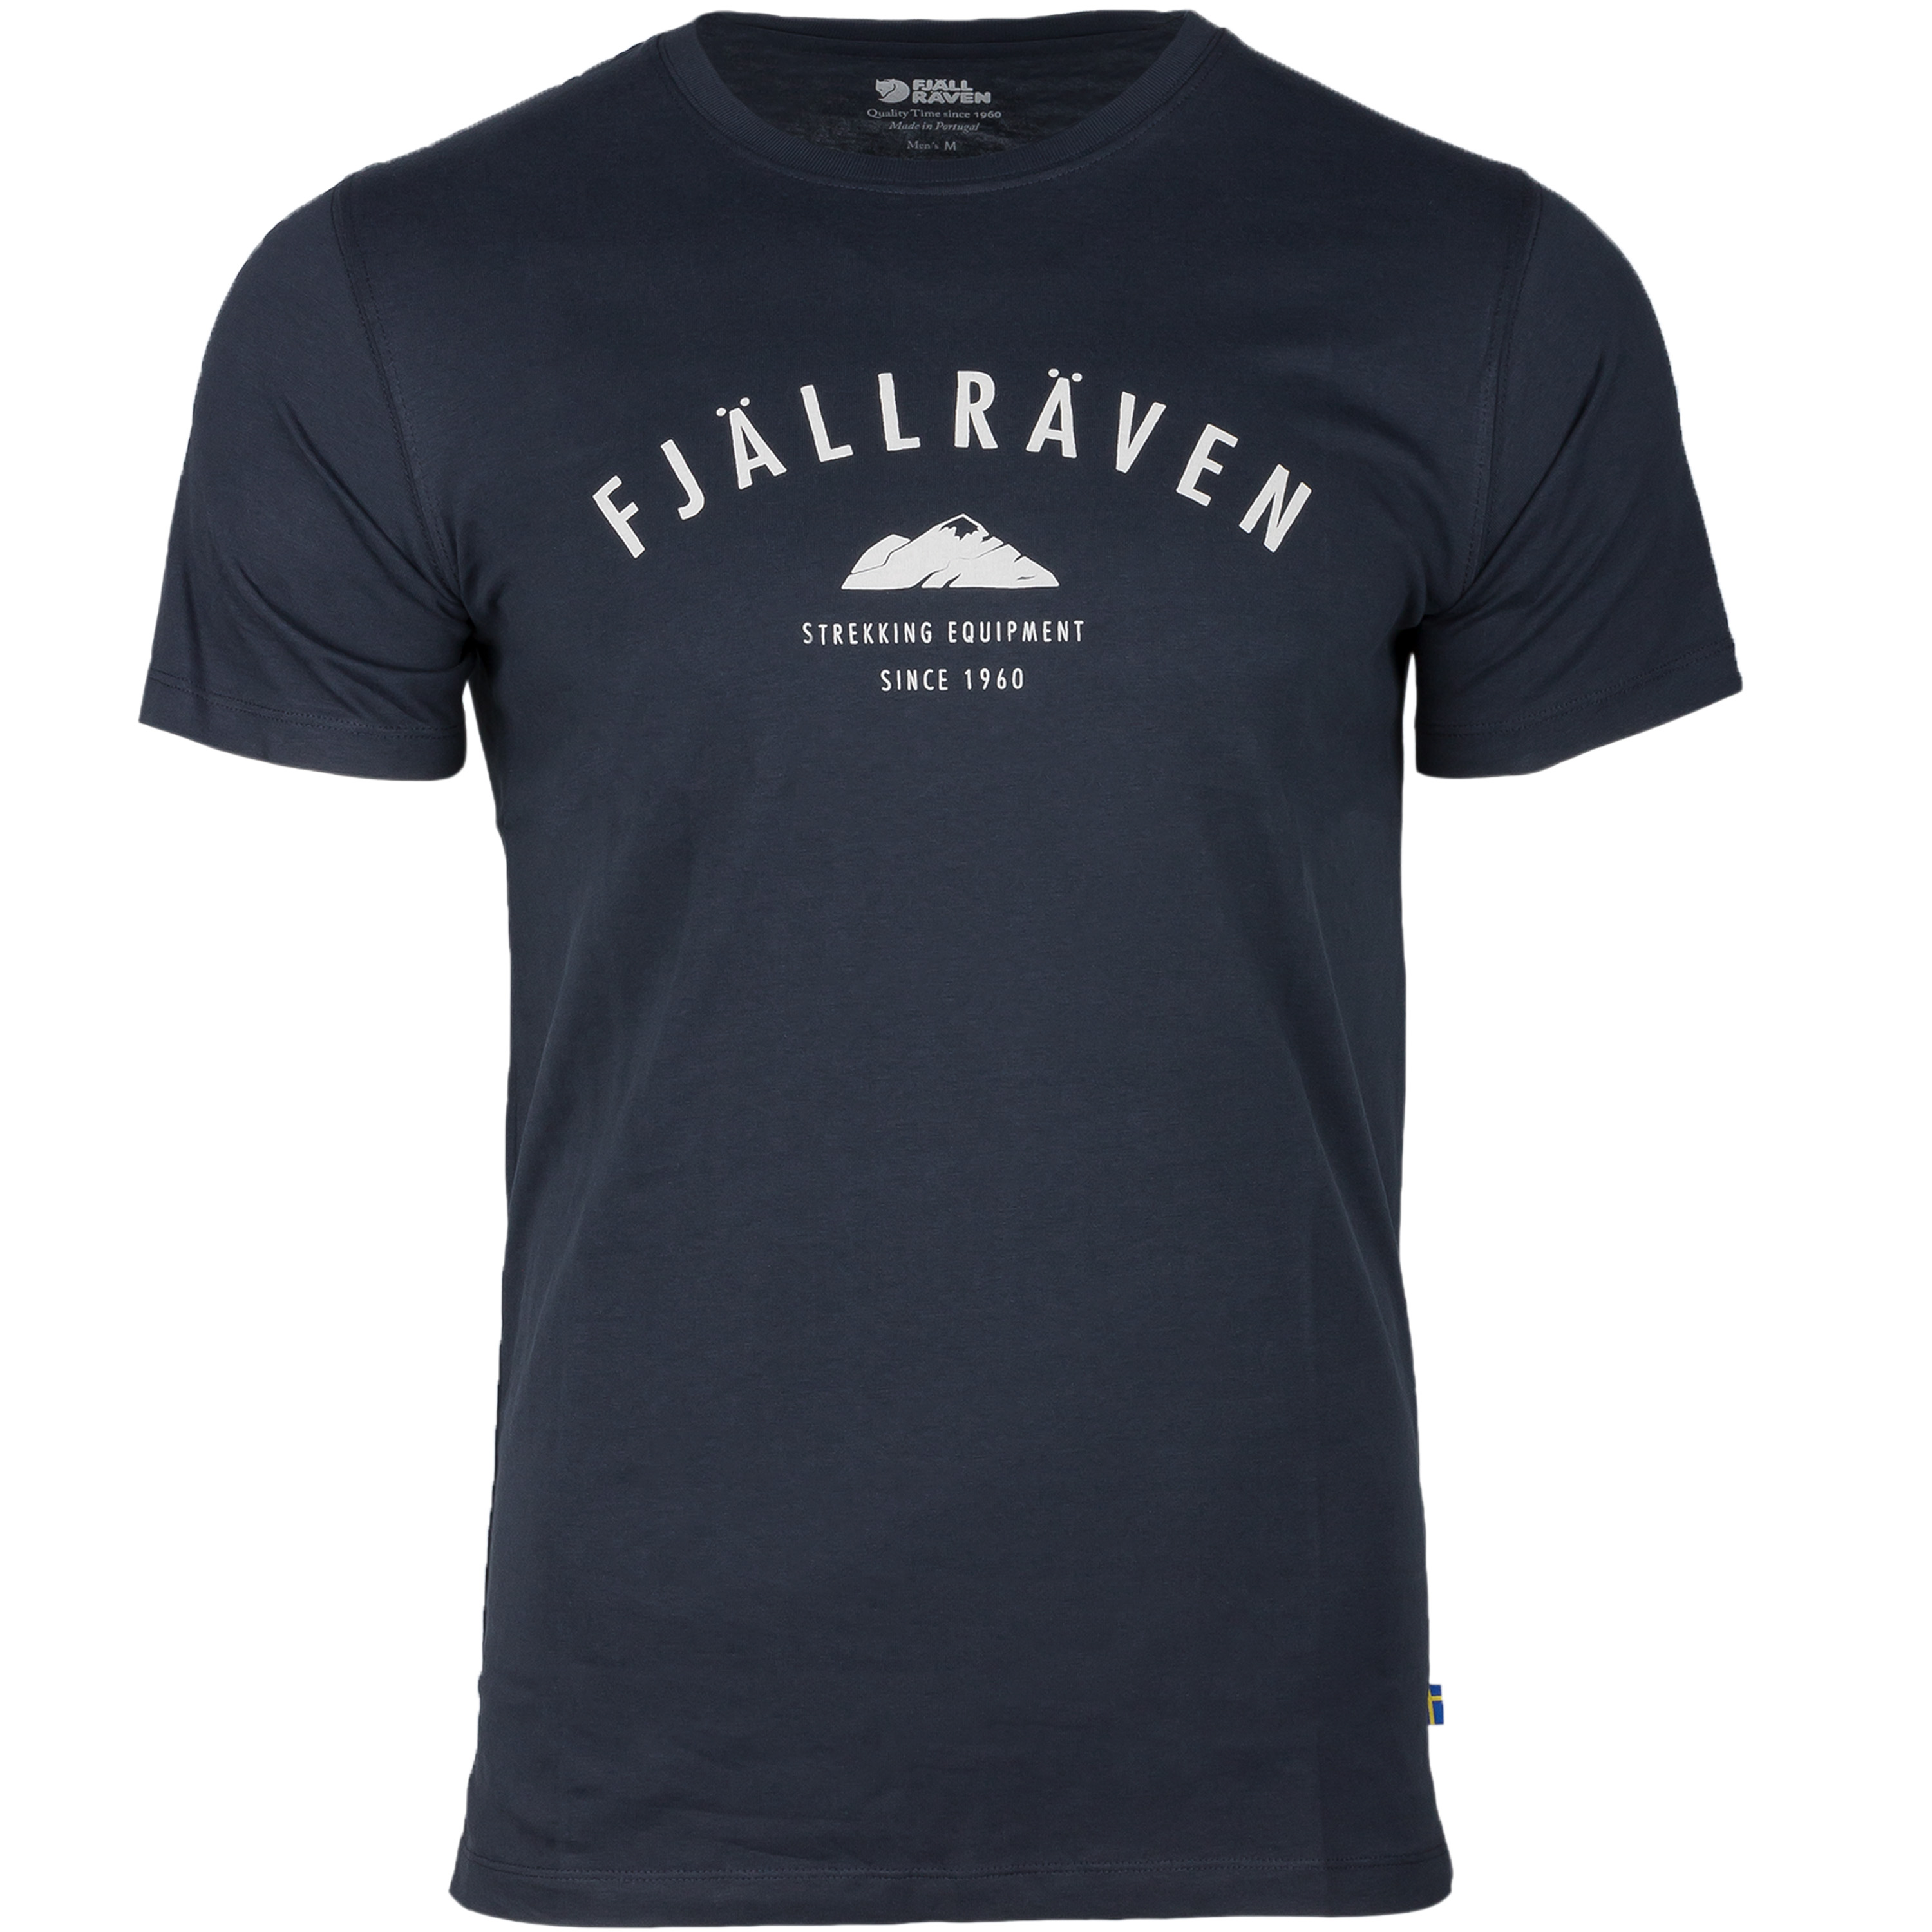 T-Shirt Fjällräven Trekking Equipment dunkel-blau